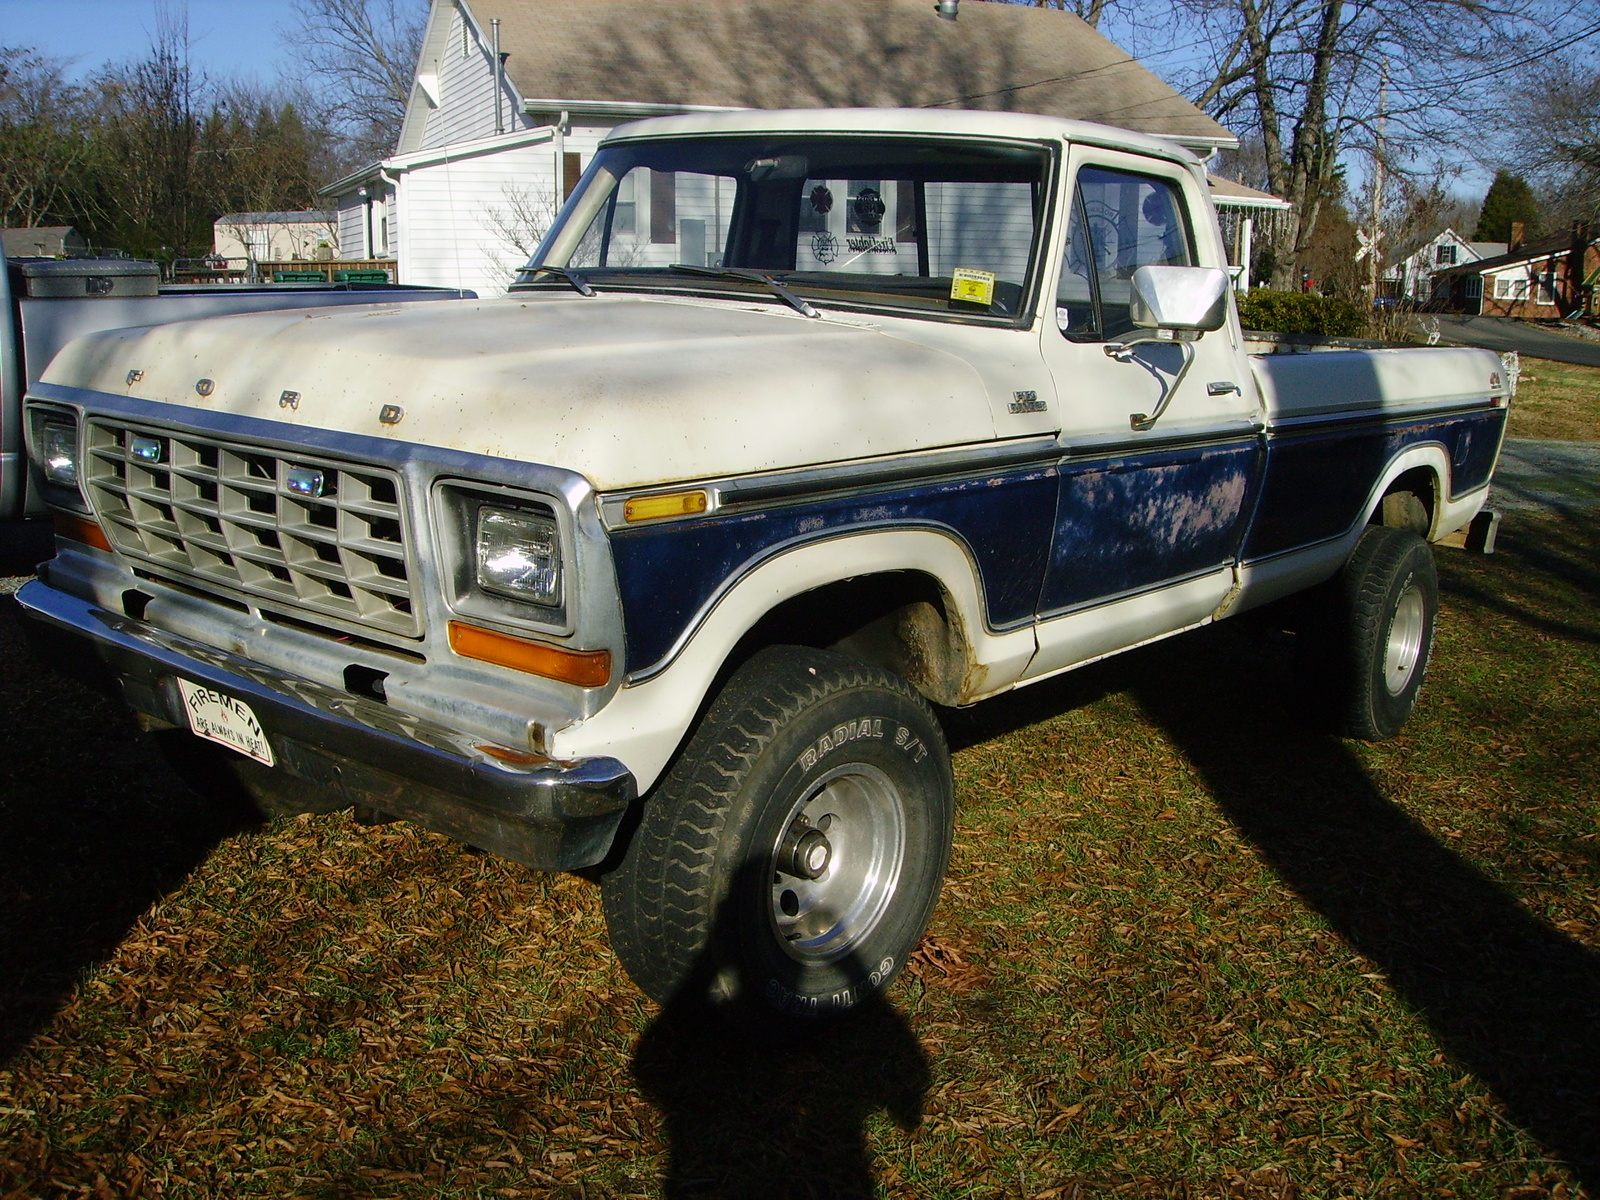 Ford f-150 1990 photo - 6